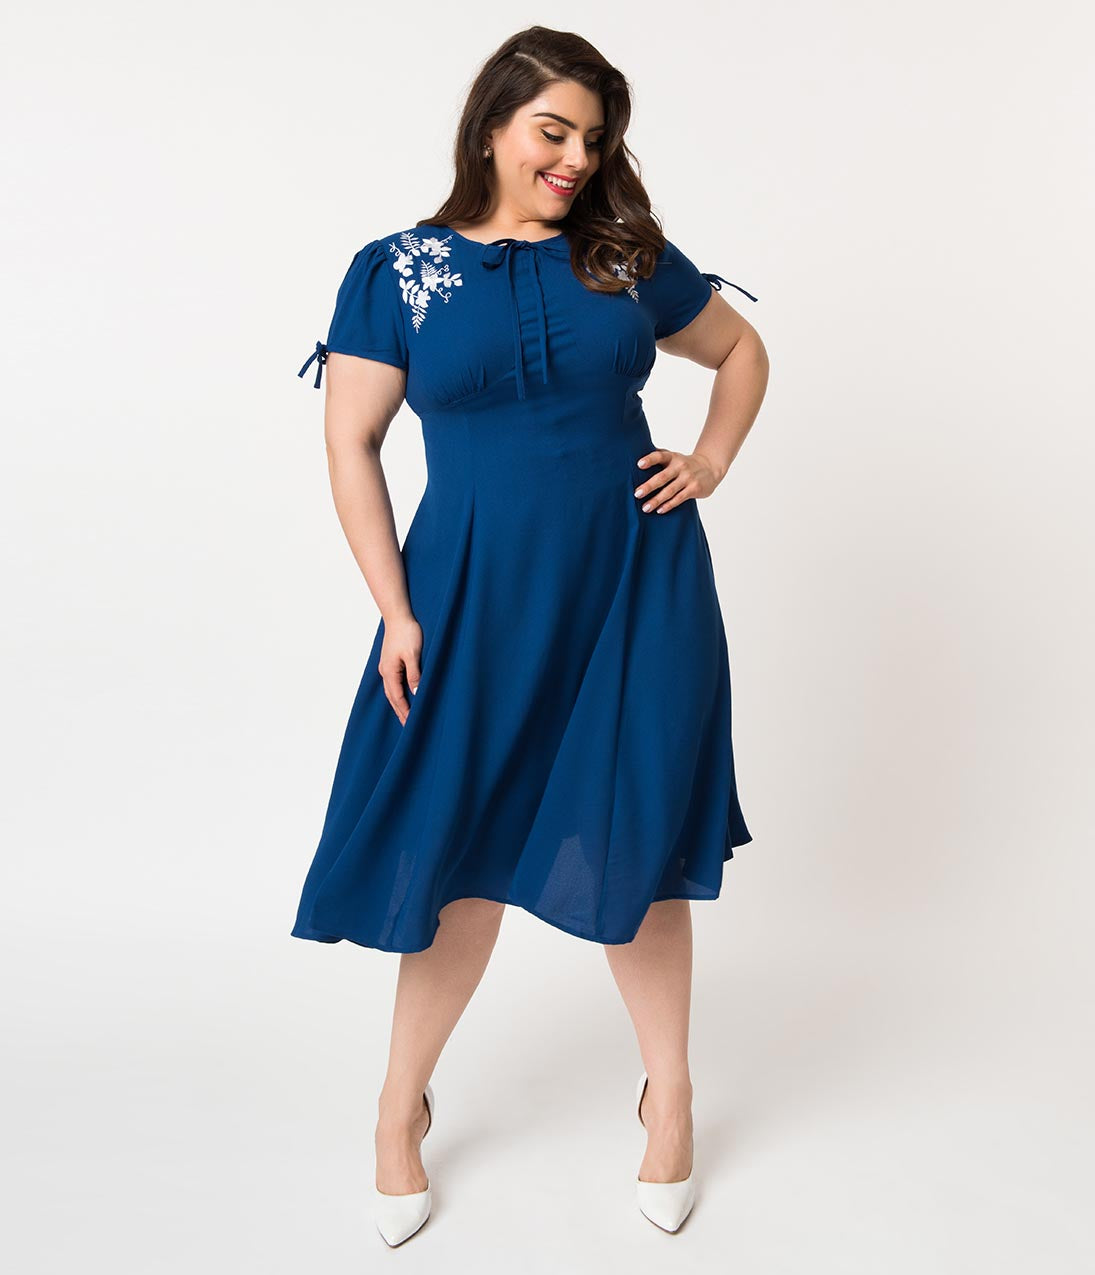 1940s Plus Size Dresses | Swing Dress, Tea Dress Plus Size 1940S Style Royal Blue Crepe  White Embroidered Floral Ava Swing Dress $78.00 AT vintagedancer.com